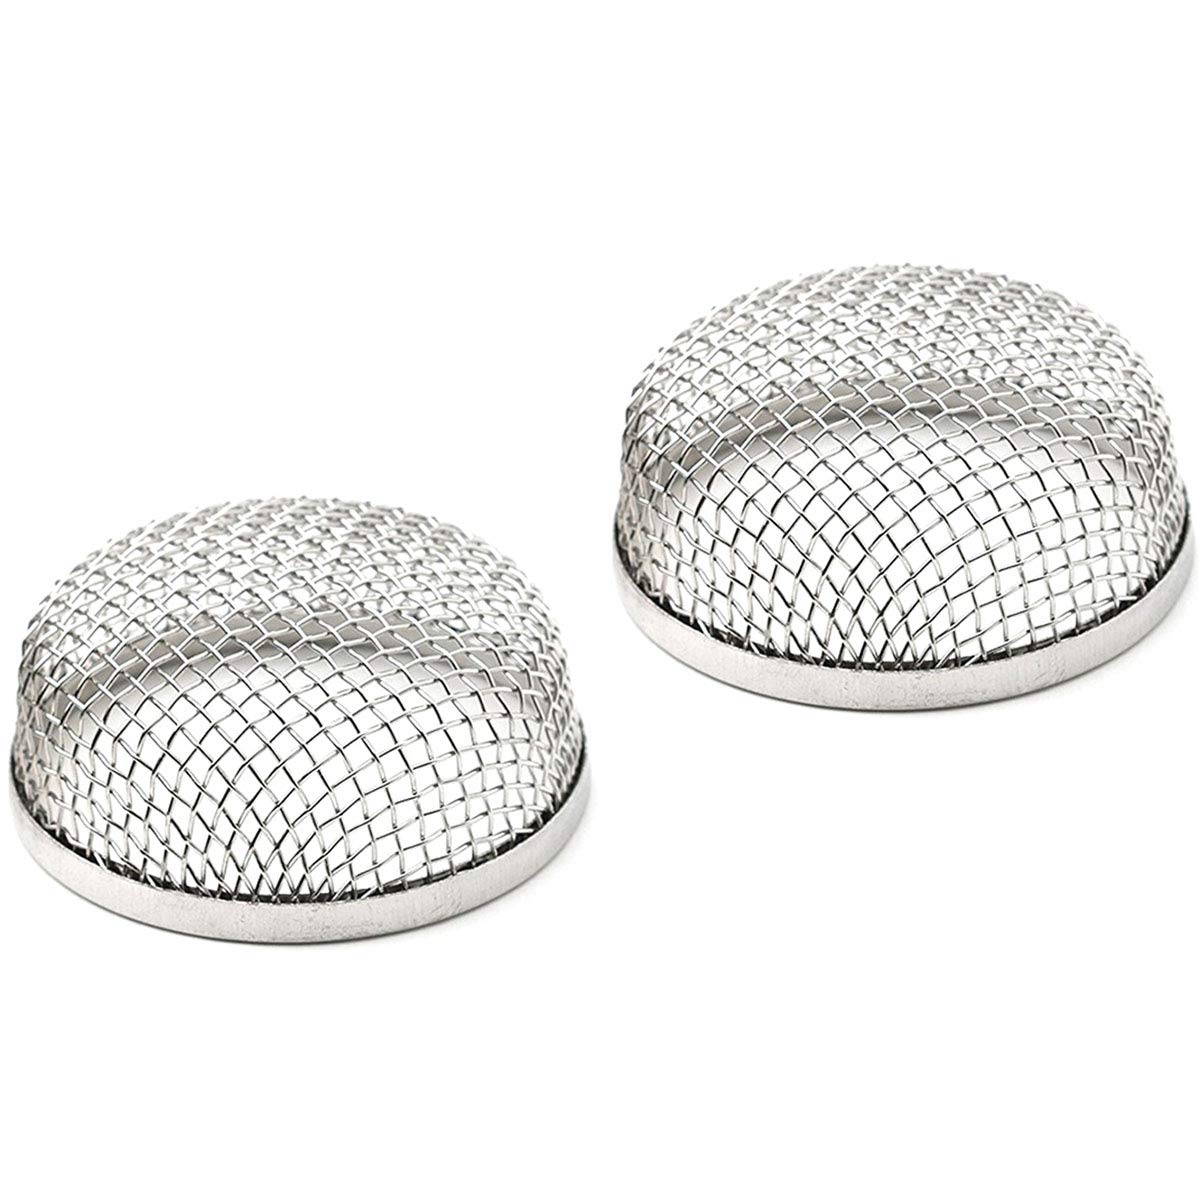 JIAYI RV Exhaust Cover, Flying Insect Screen, RV Furnace Vent Cover, Protects RV Furnaces from Insects and Prevents RV Vent Damage, 2.8' Stainless Steel Mesh Screens - Installation Tool Included-(2 Pack)